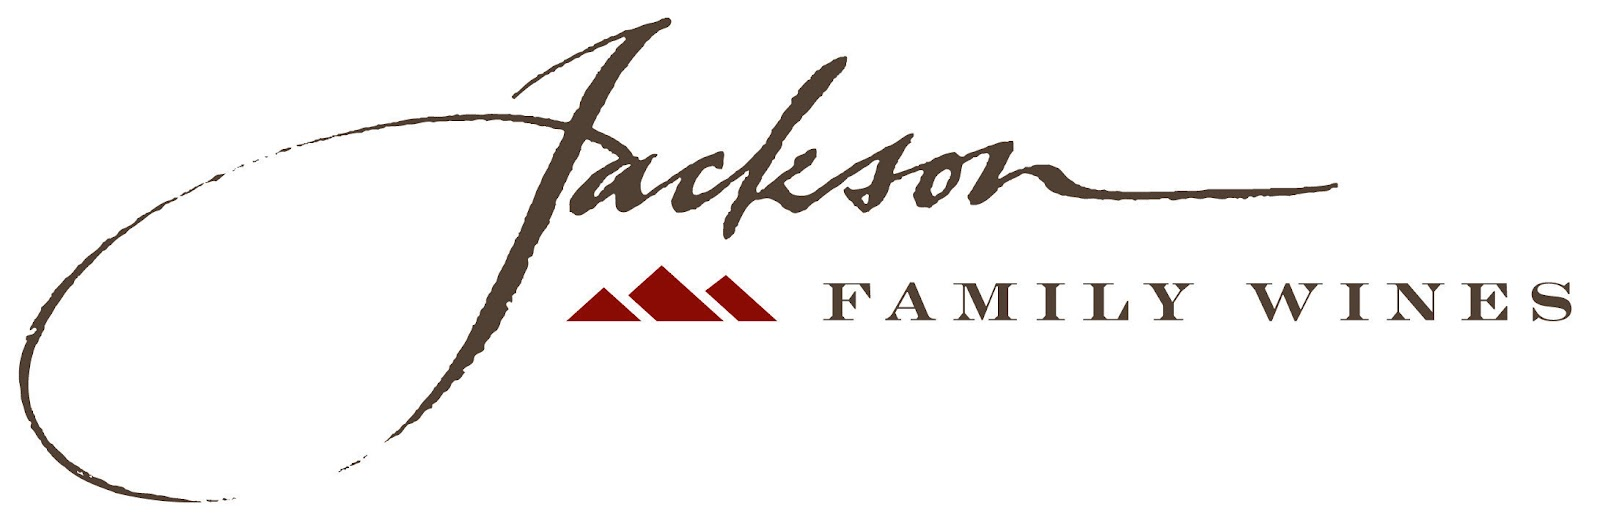 Jacksons Family Wines Logo